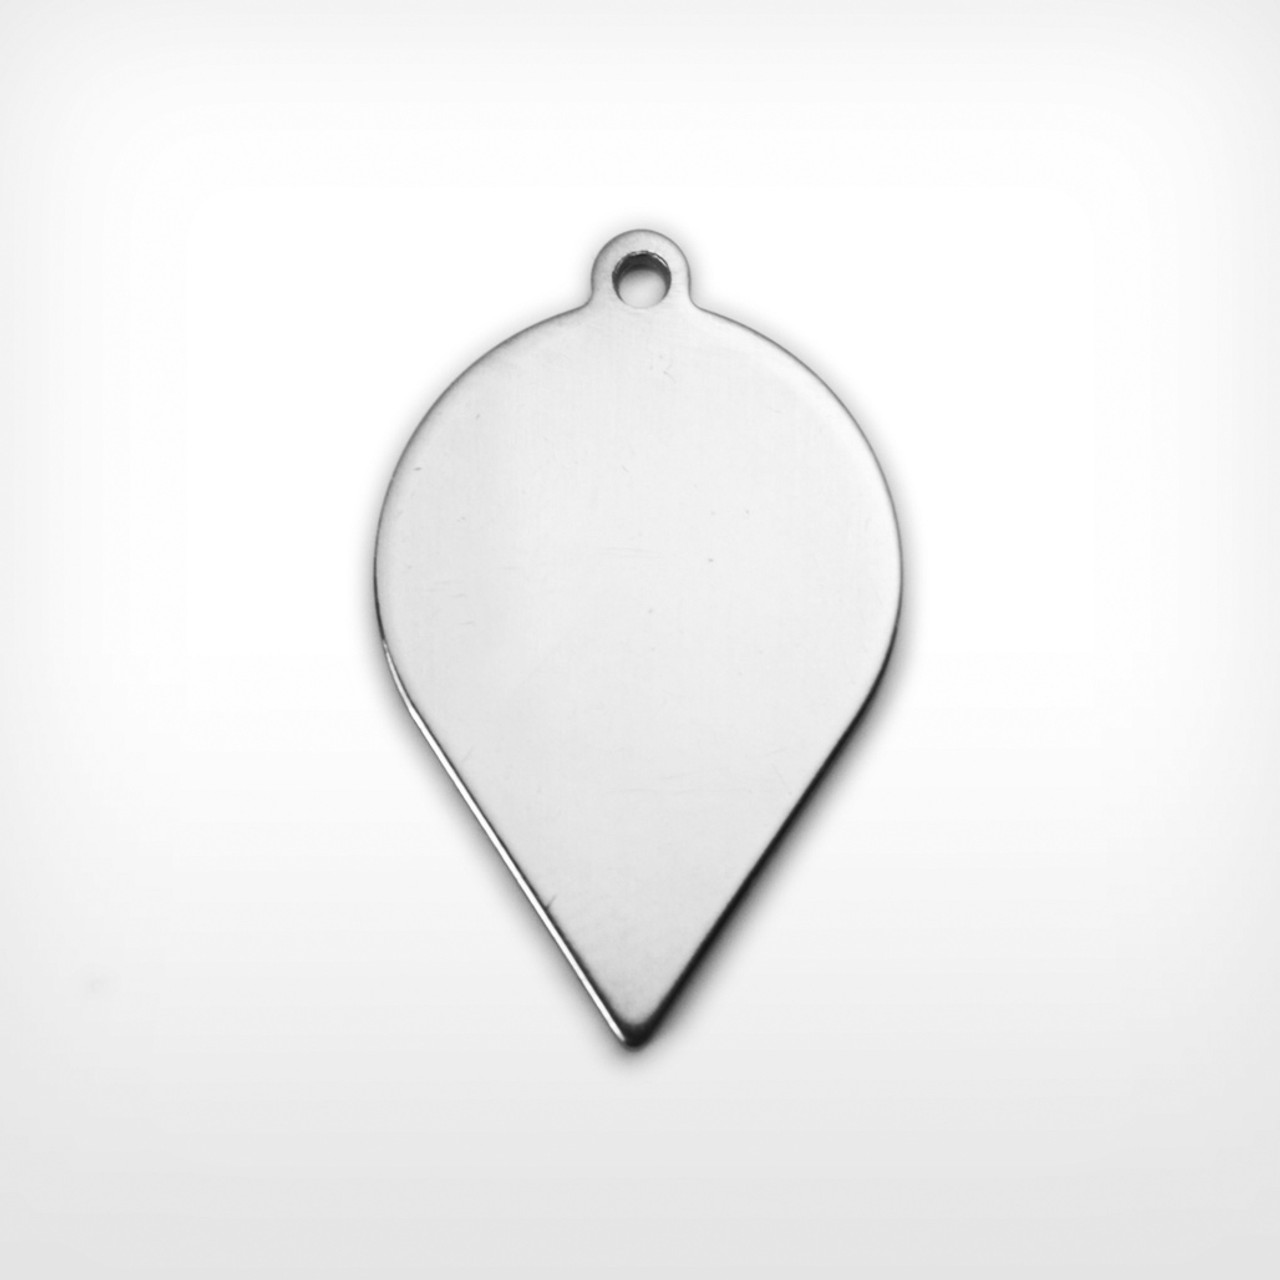 Aluminium Blank Stamped Drop for Jewelry Metalwork and & Other Crafts